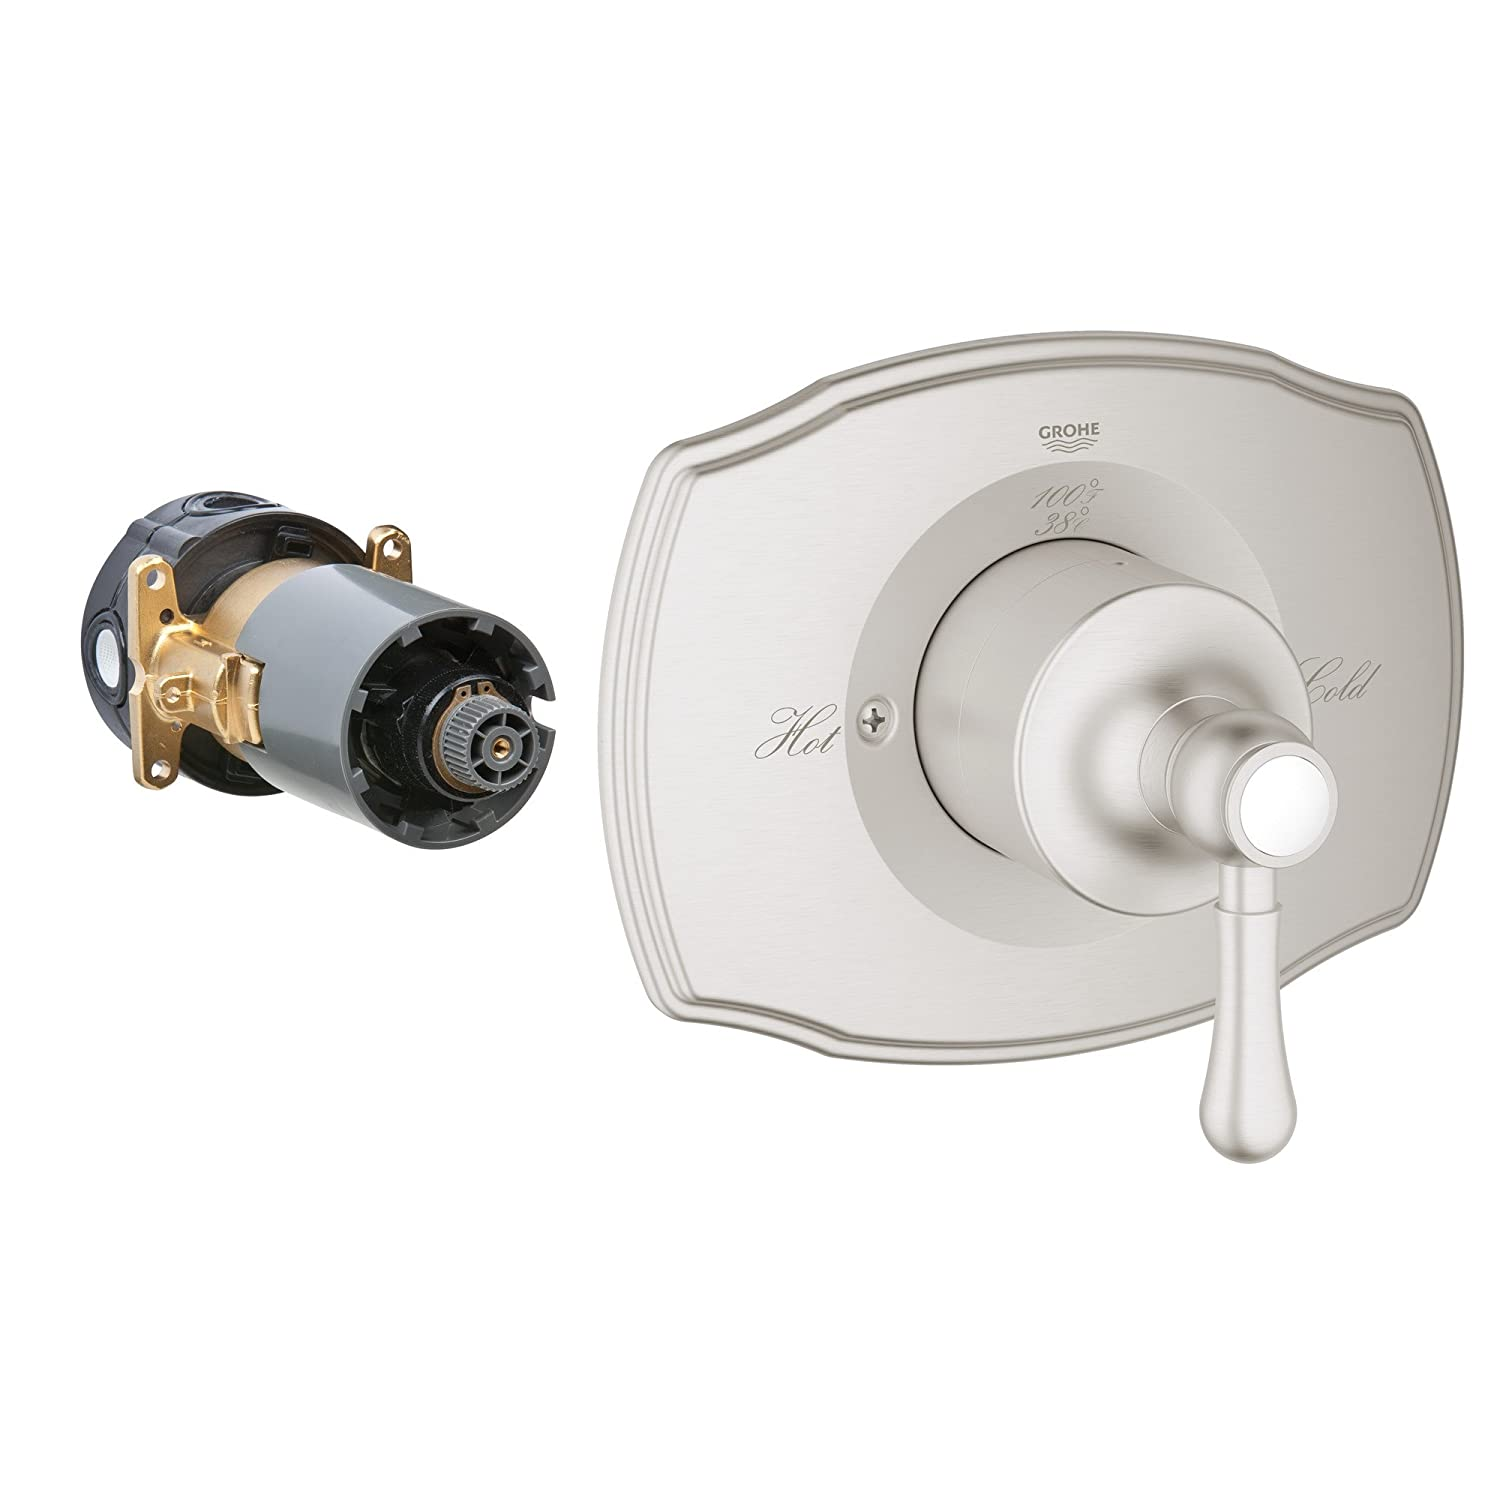 Grohflex Authentic Single Function Pressure Balance Trim With Control Module Grohe 19843000